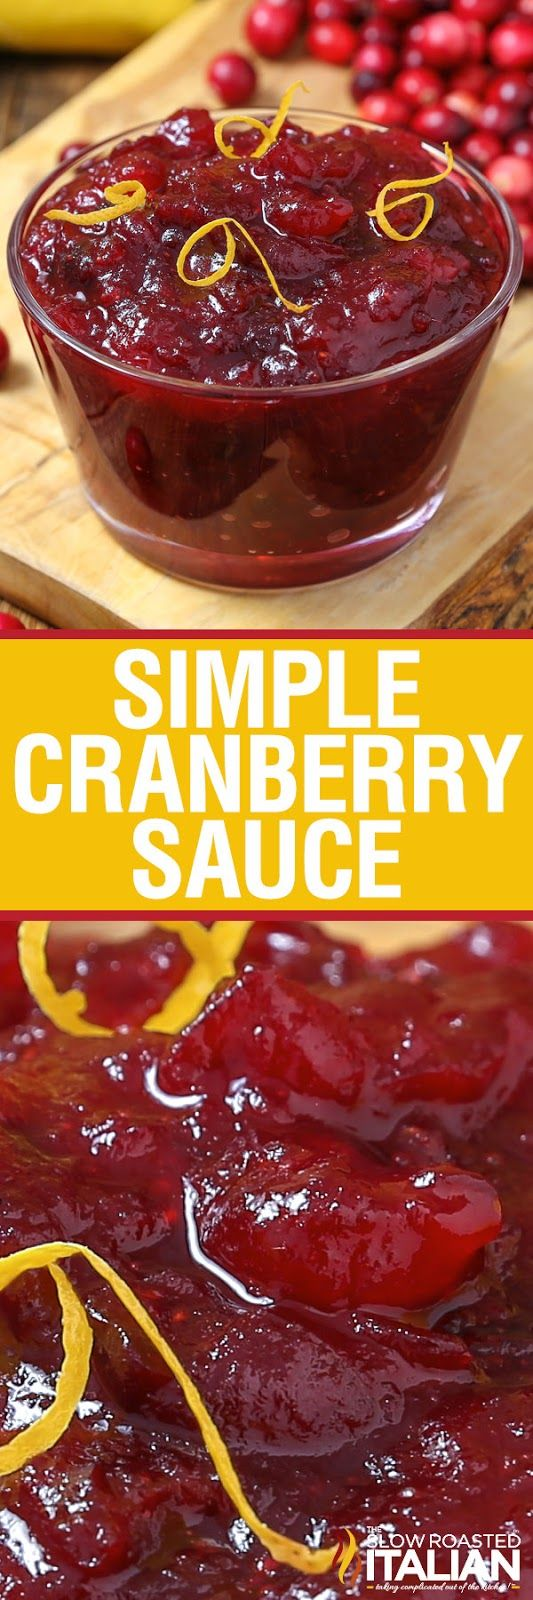 Simple Cranberry Sauce with just 3 ingredients is sure to be a family tradition!